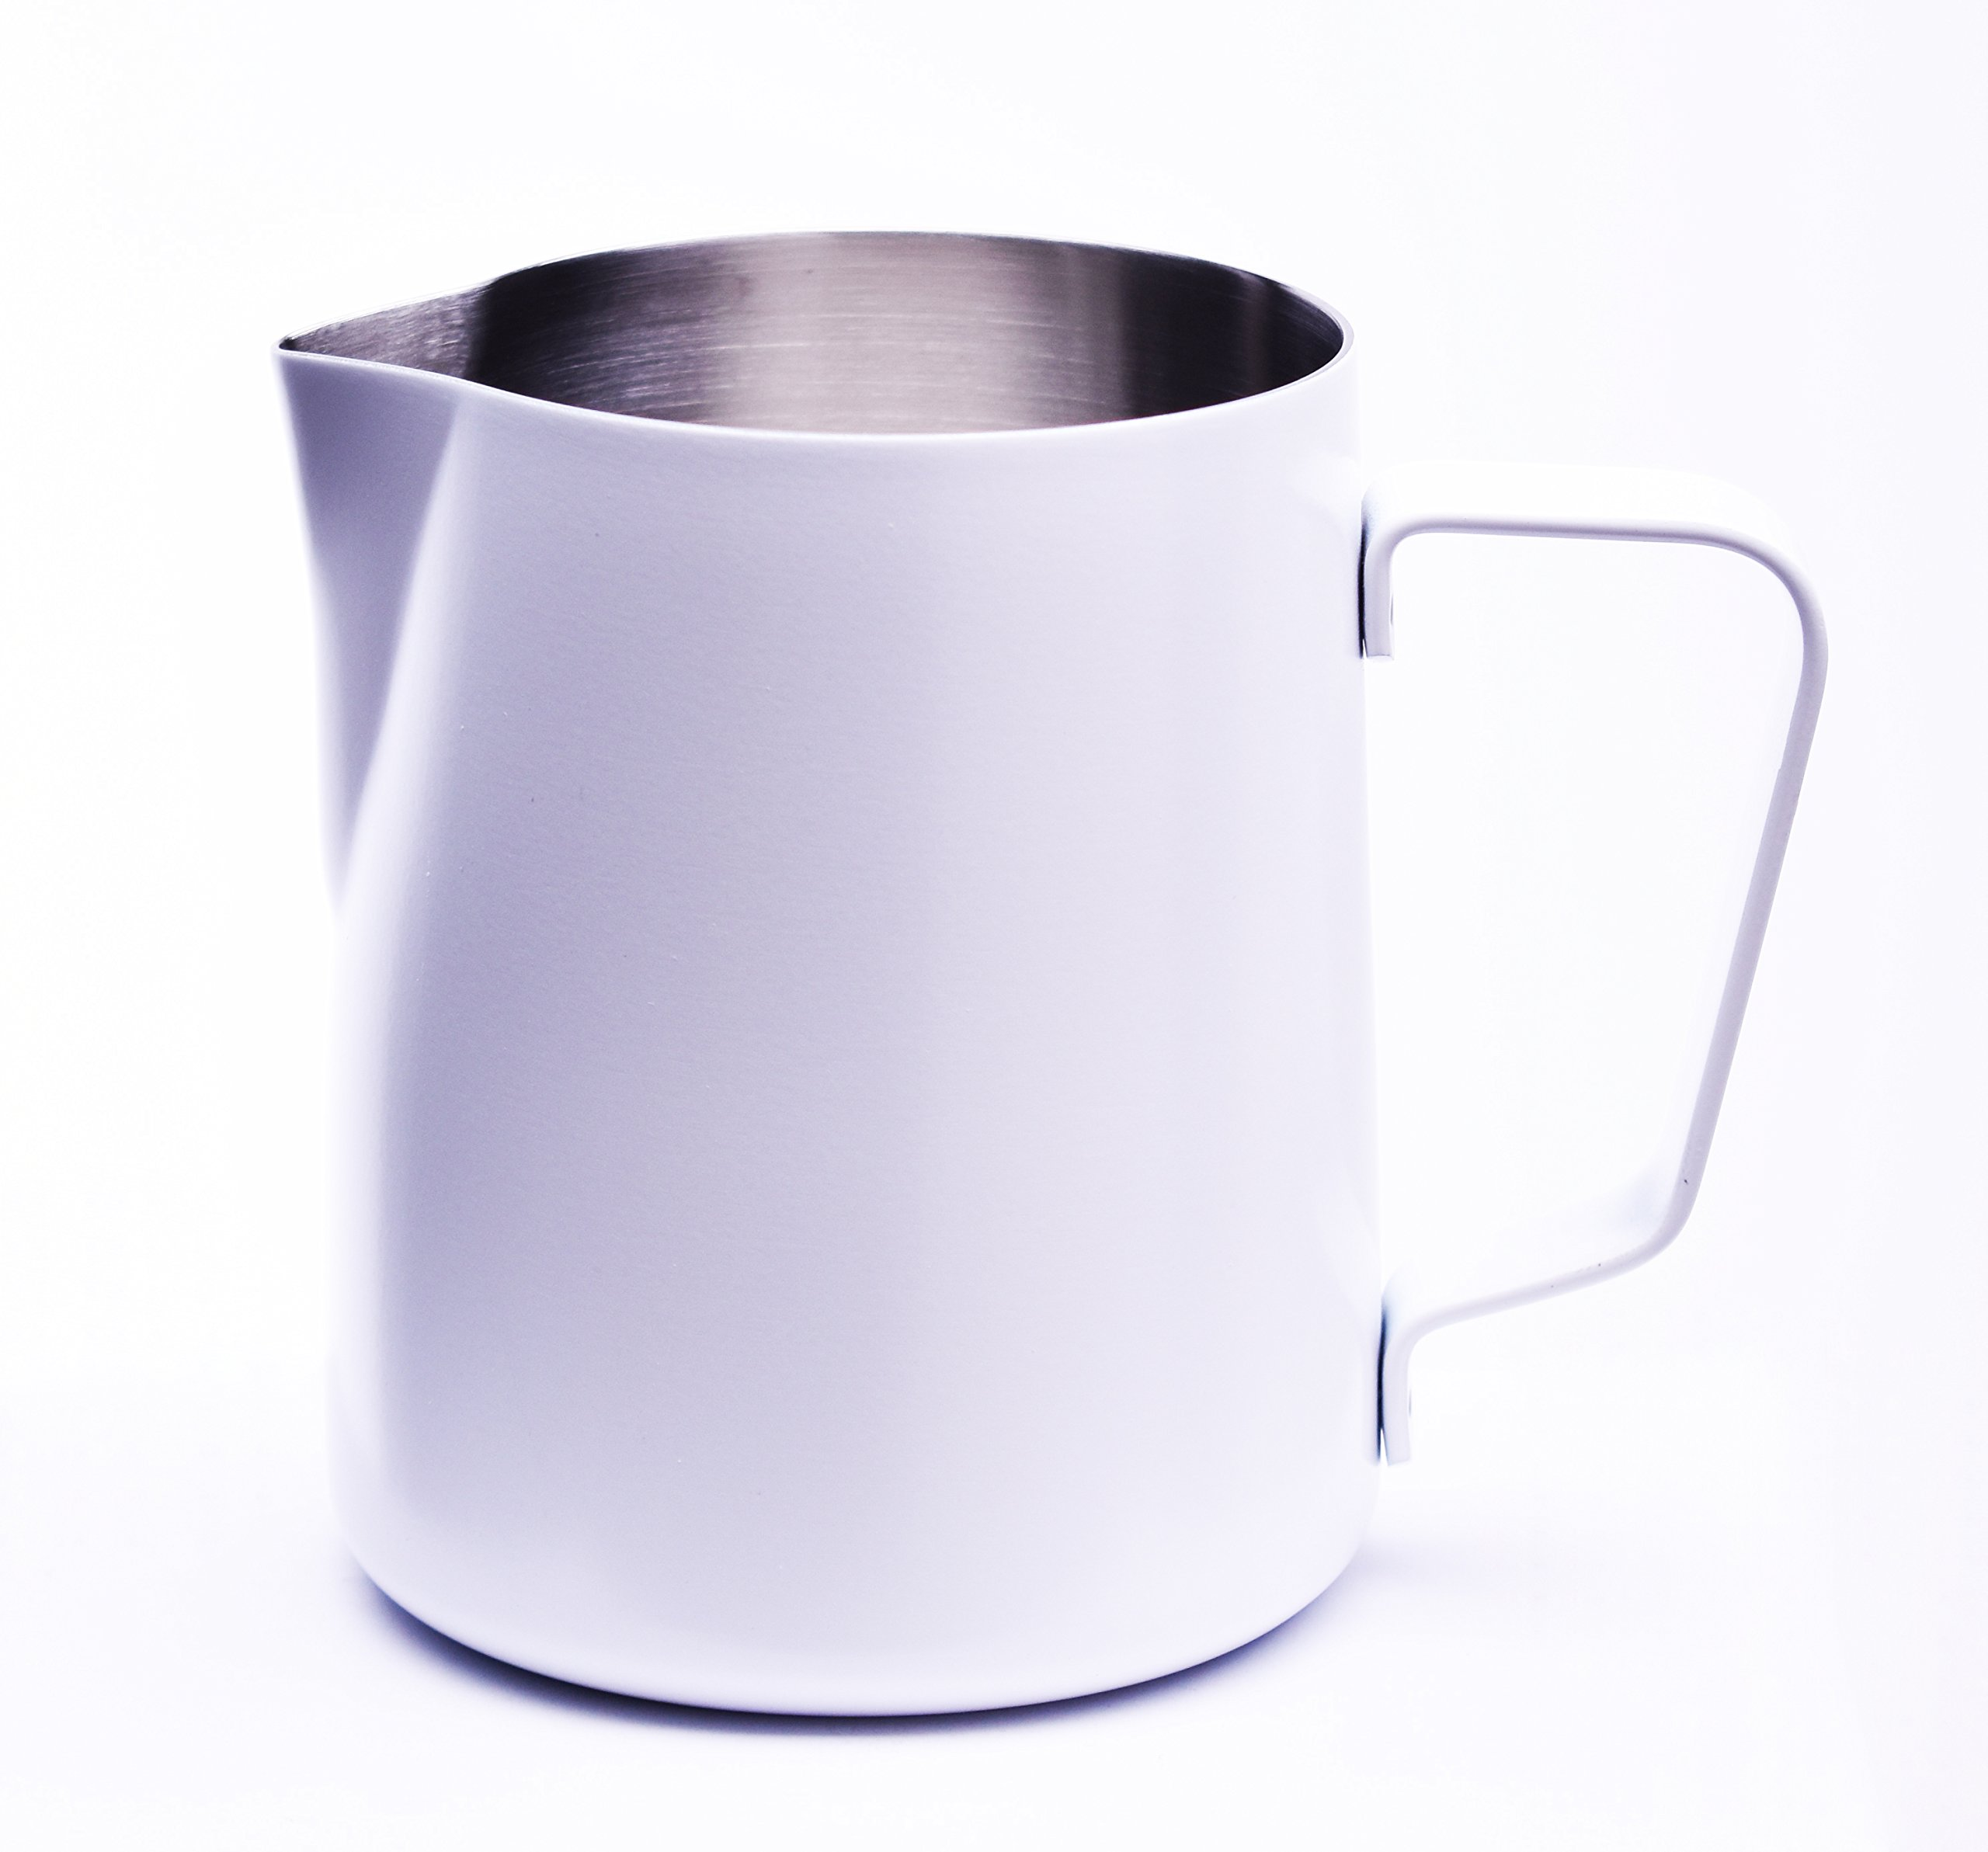 Milk Pitcher White,Steaming and Frothing Milk Pitcher 20 oz powder coated